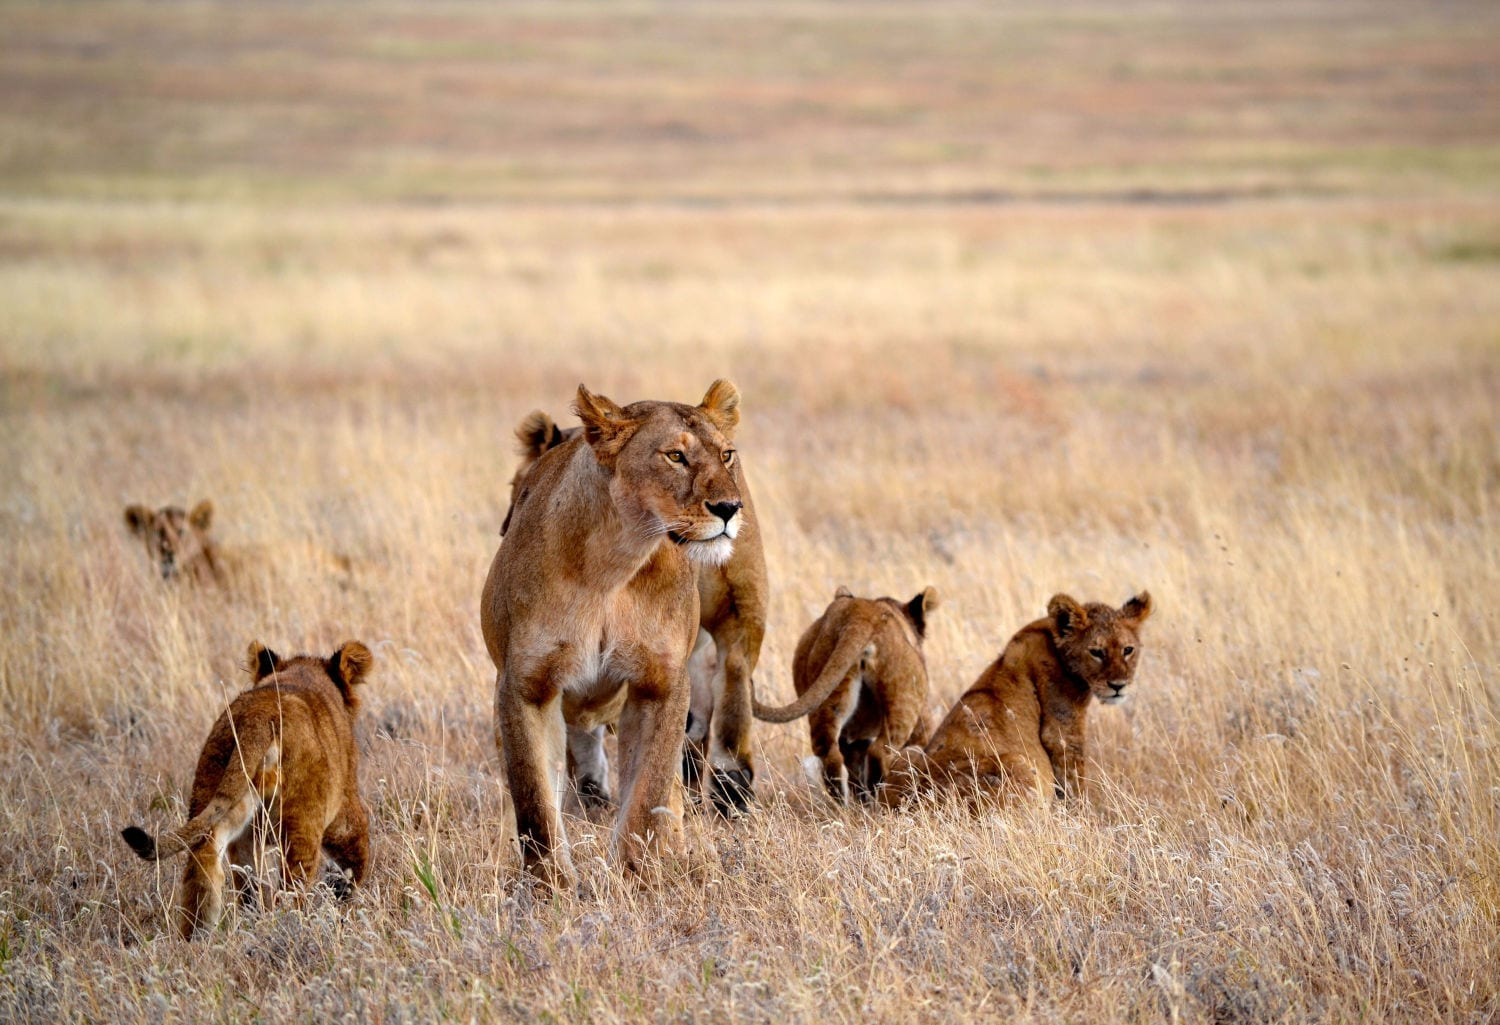 A pride of lions in Africa